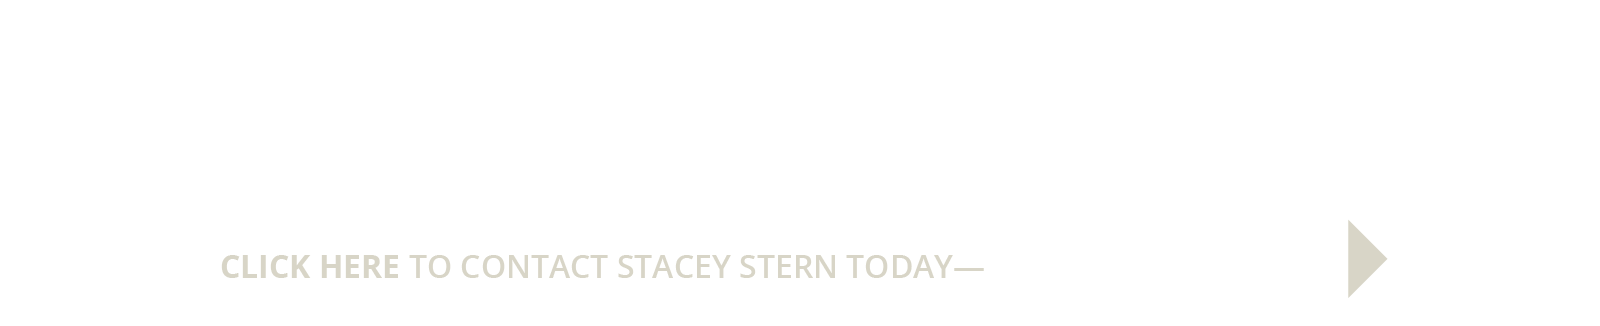 Stacey Stern Consulting link to Contact Form graphic